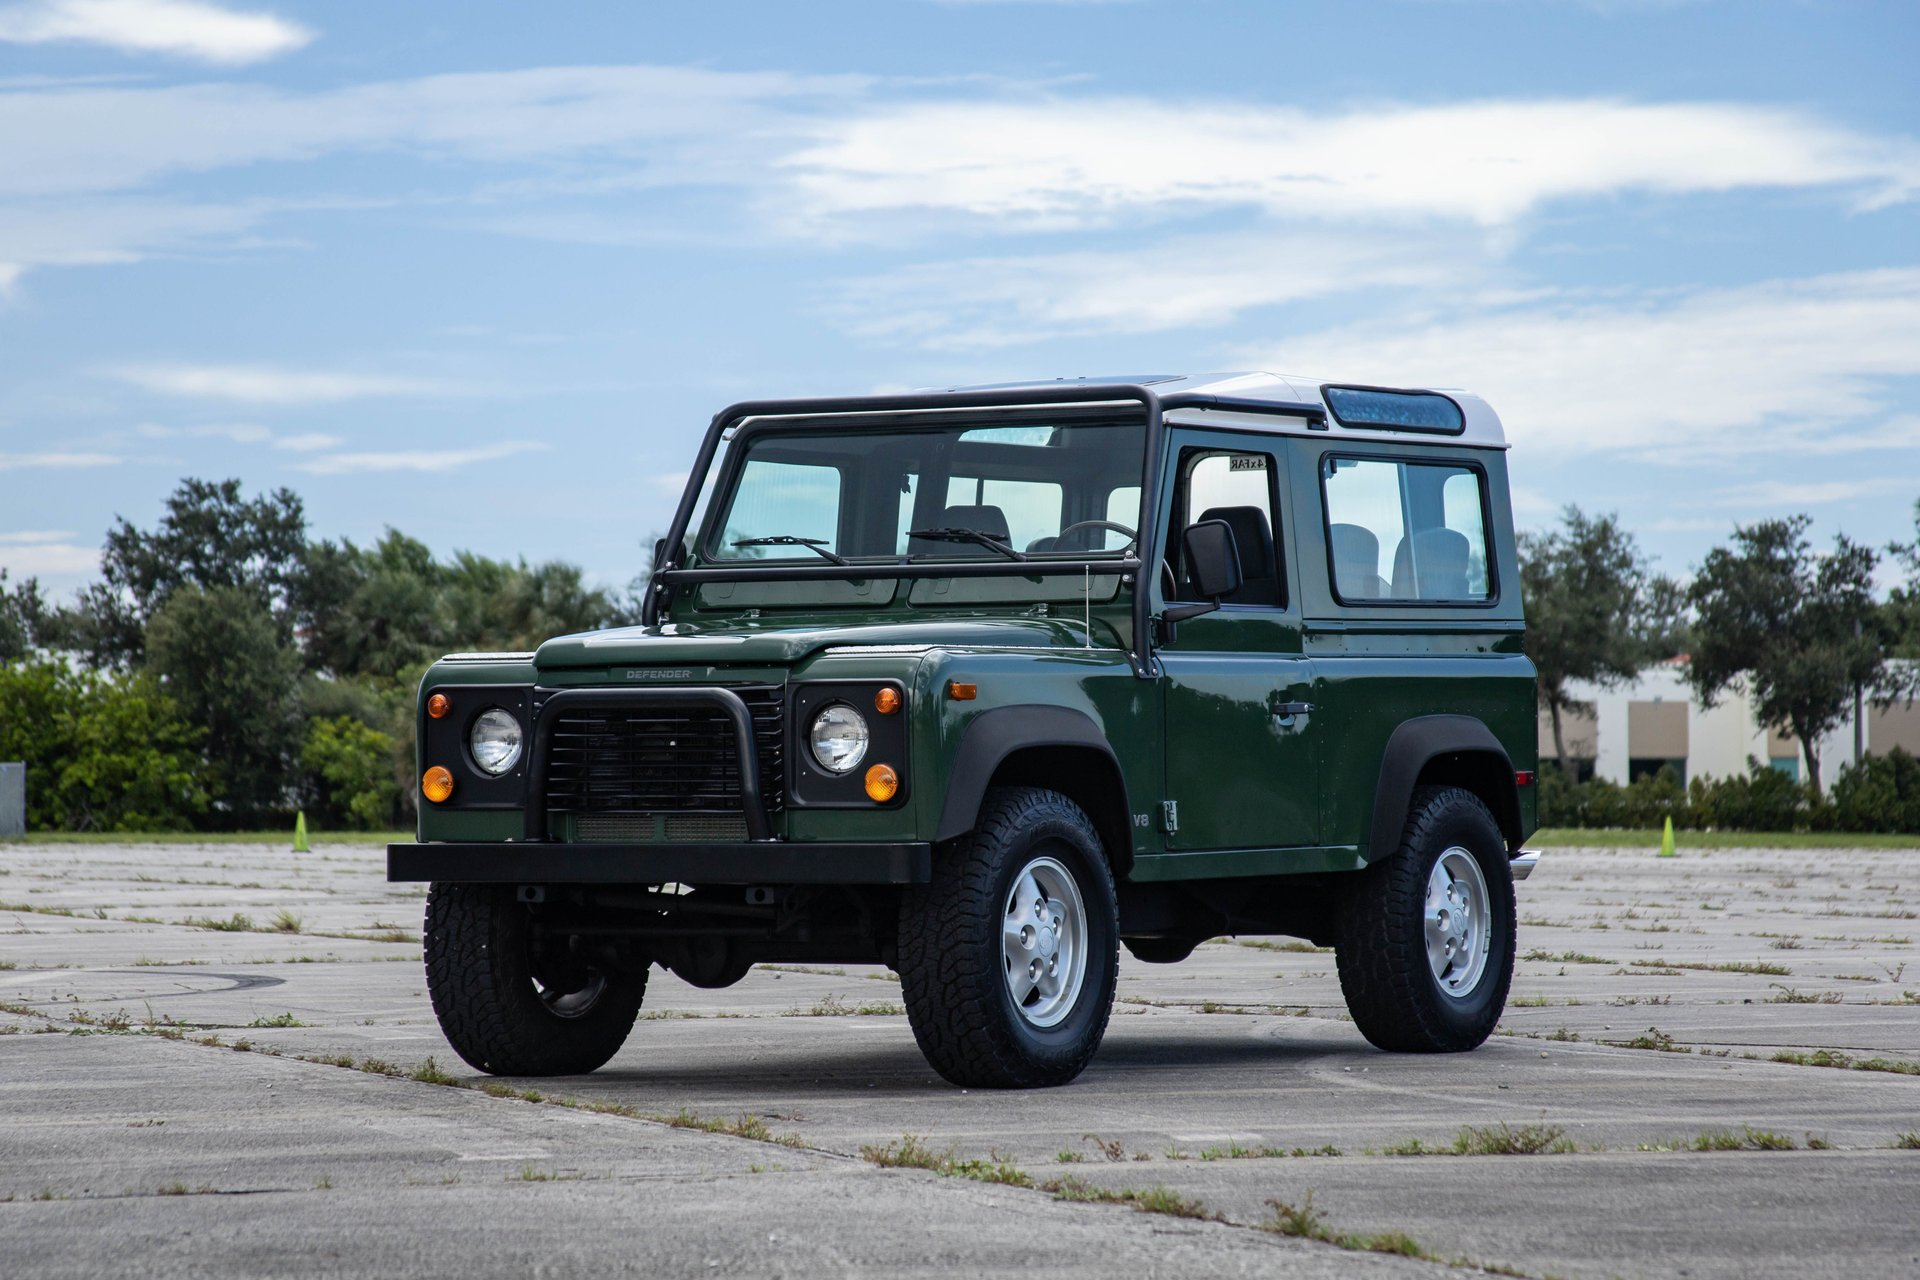 1997 land rover defender 90 2dr station wagon hard top